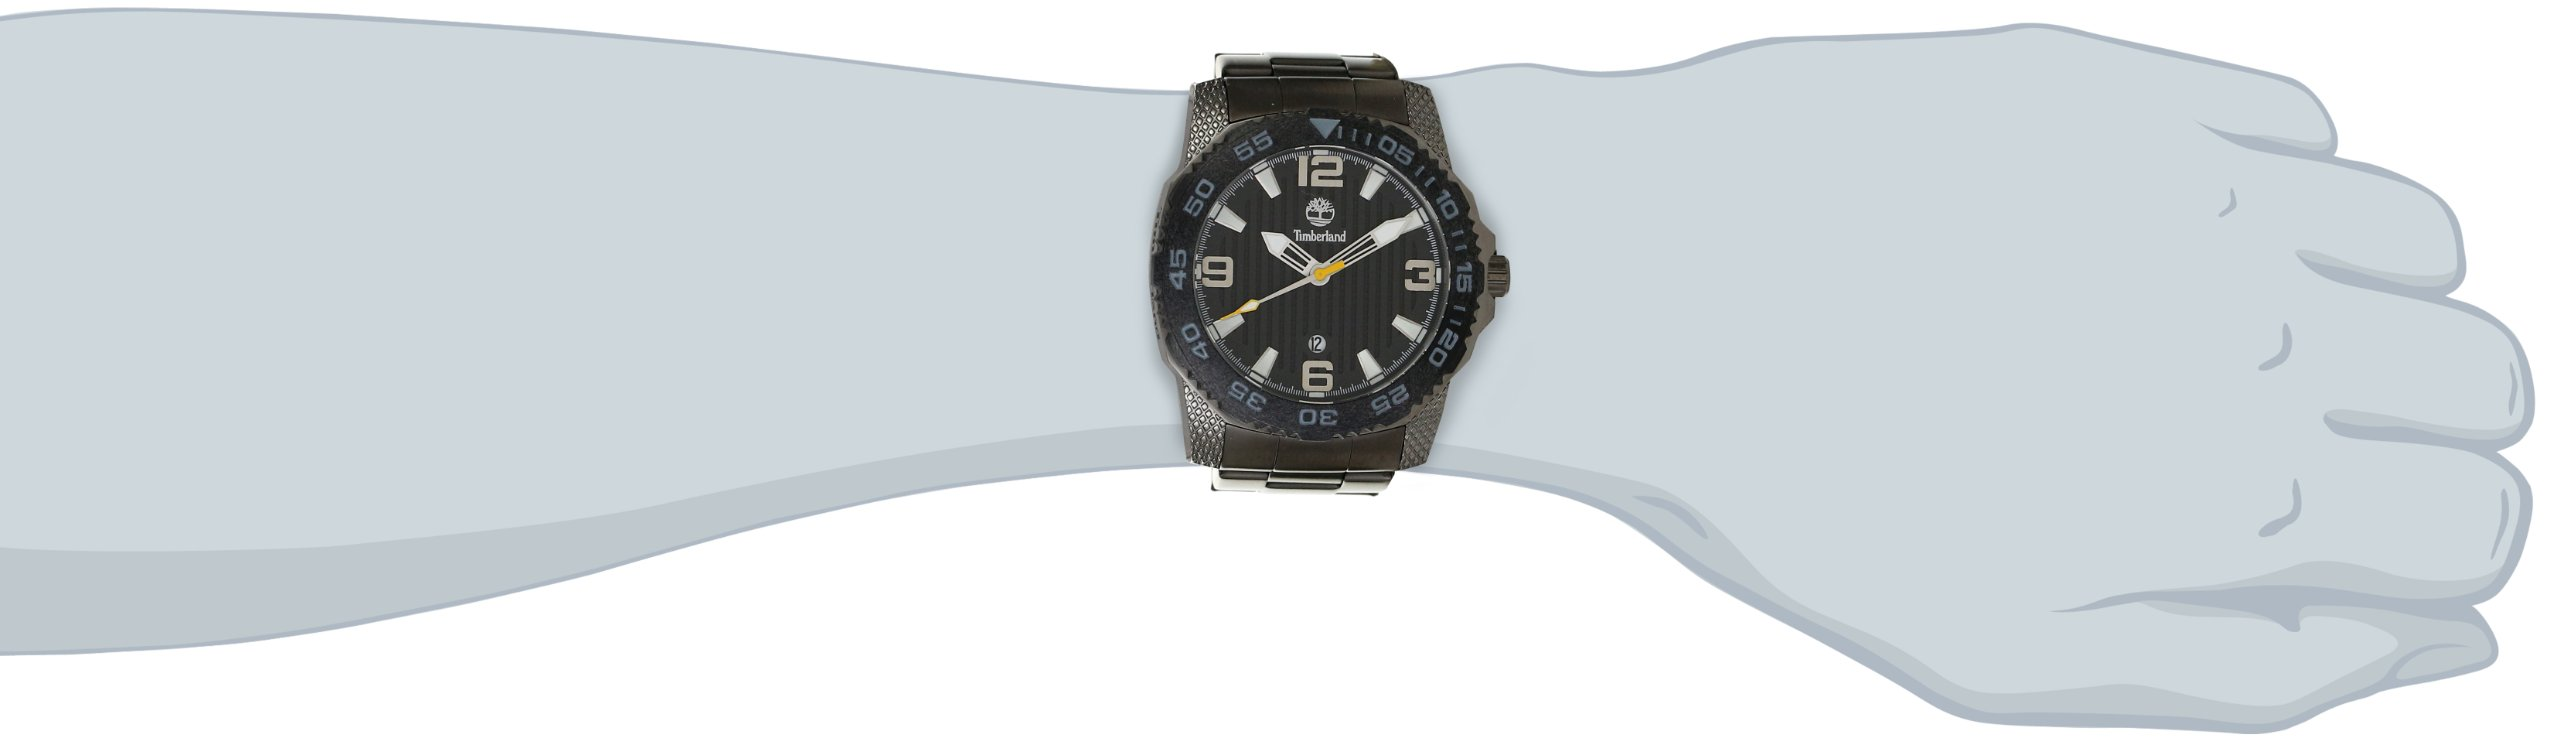 Timberland Men's 13613JSUB_02M 3 Hands Date Watch by Timberland (Image #3)